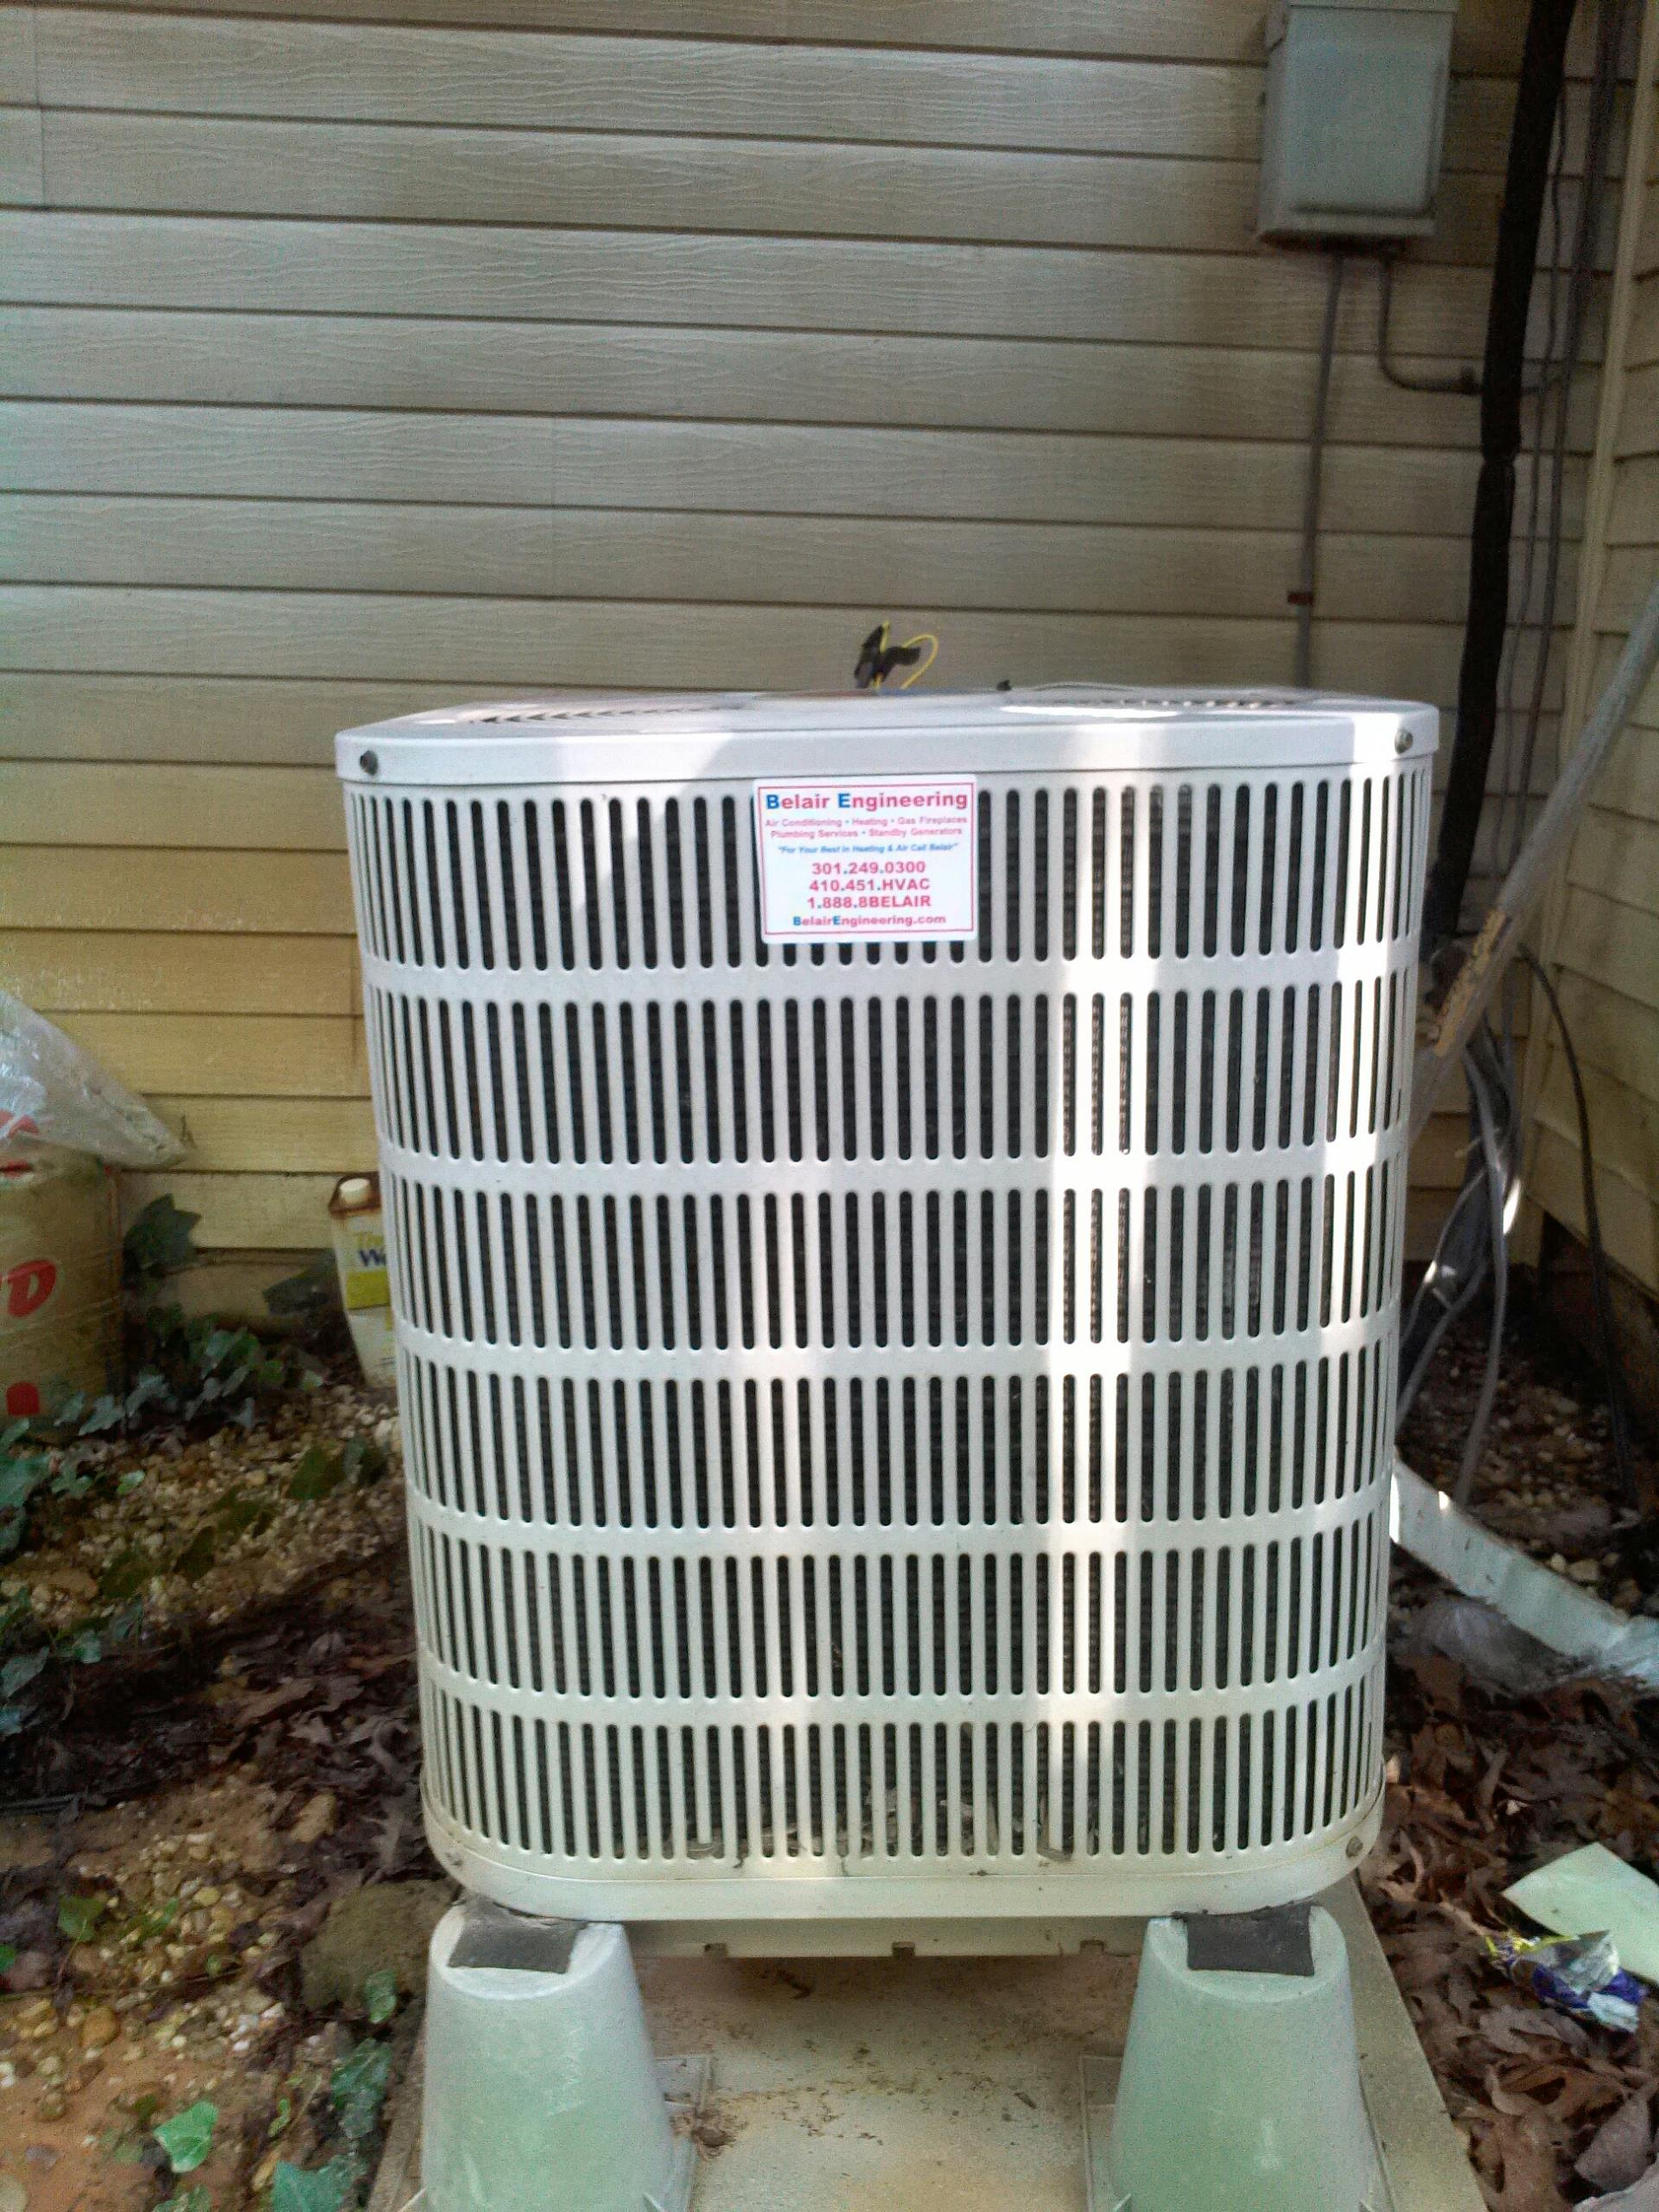 Goddard, MD - Goodman heat pump ac air conditioning & heating system replacement installation repair service call Goddard Maryland